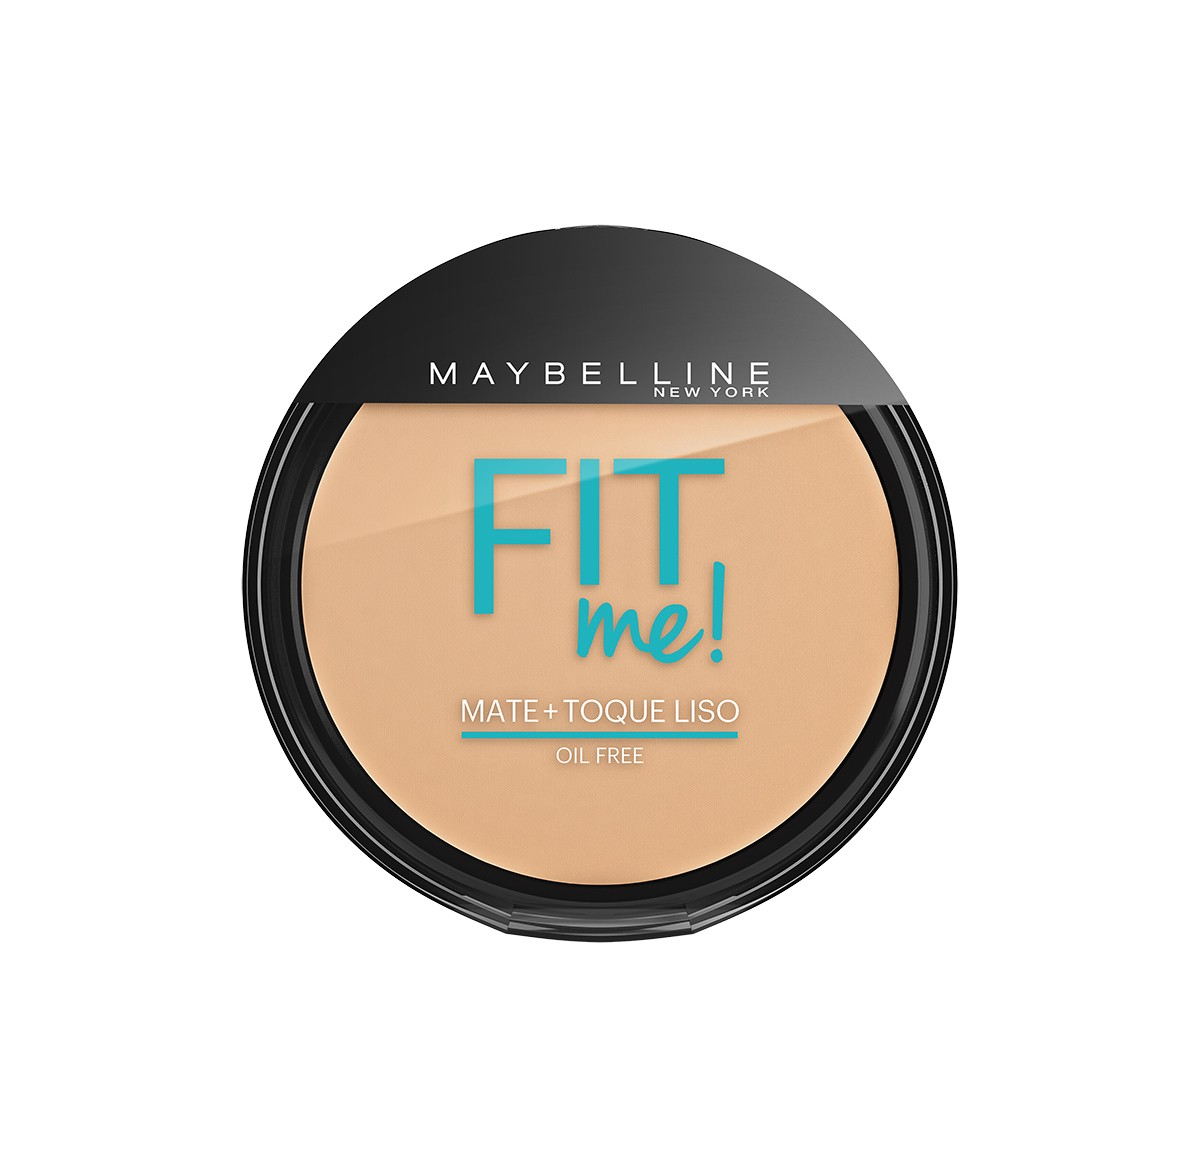 Pó Compacto Maybelline Fit Me N°130 Claro Diferente Maybelline 1 Unidade - brand